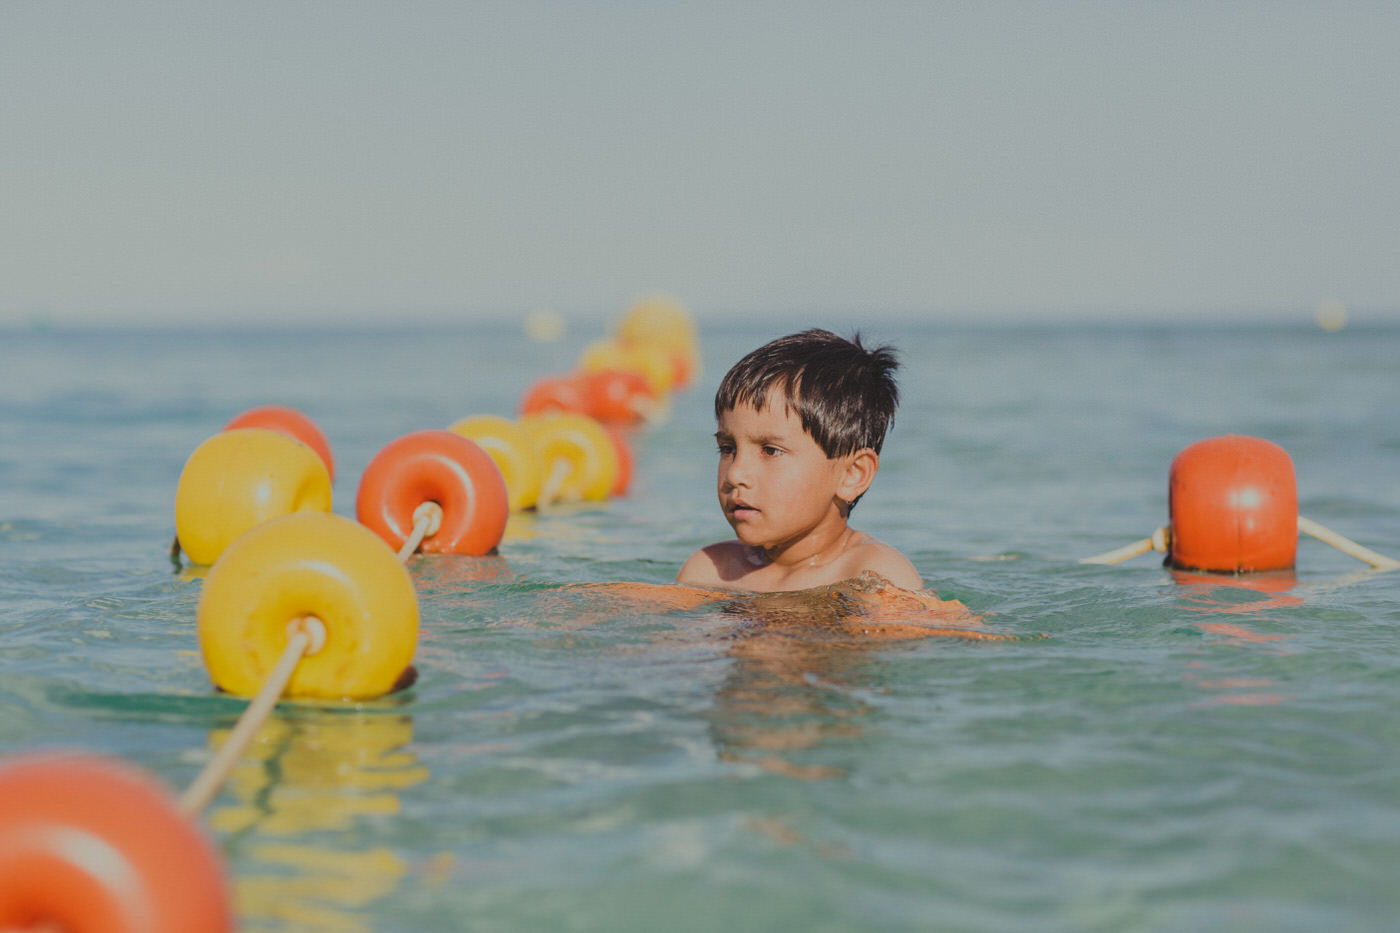 boy swimming in the ocean with colourful (yellow and red) buoys